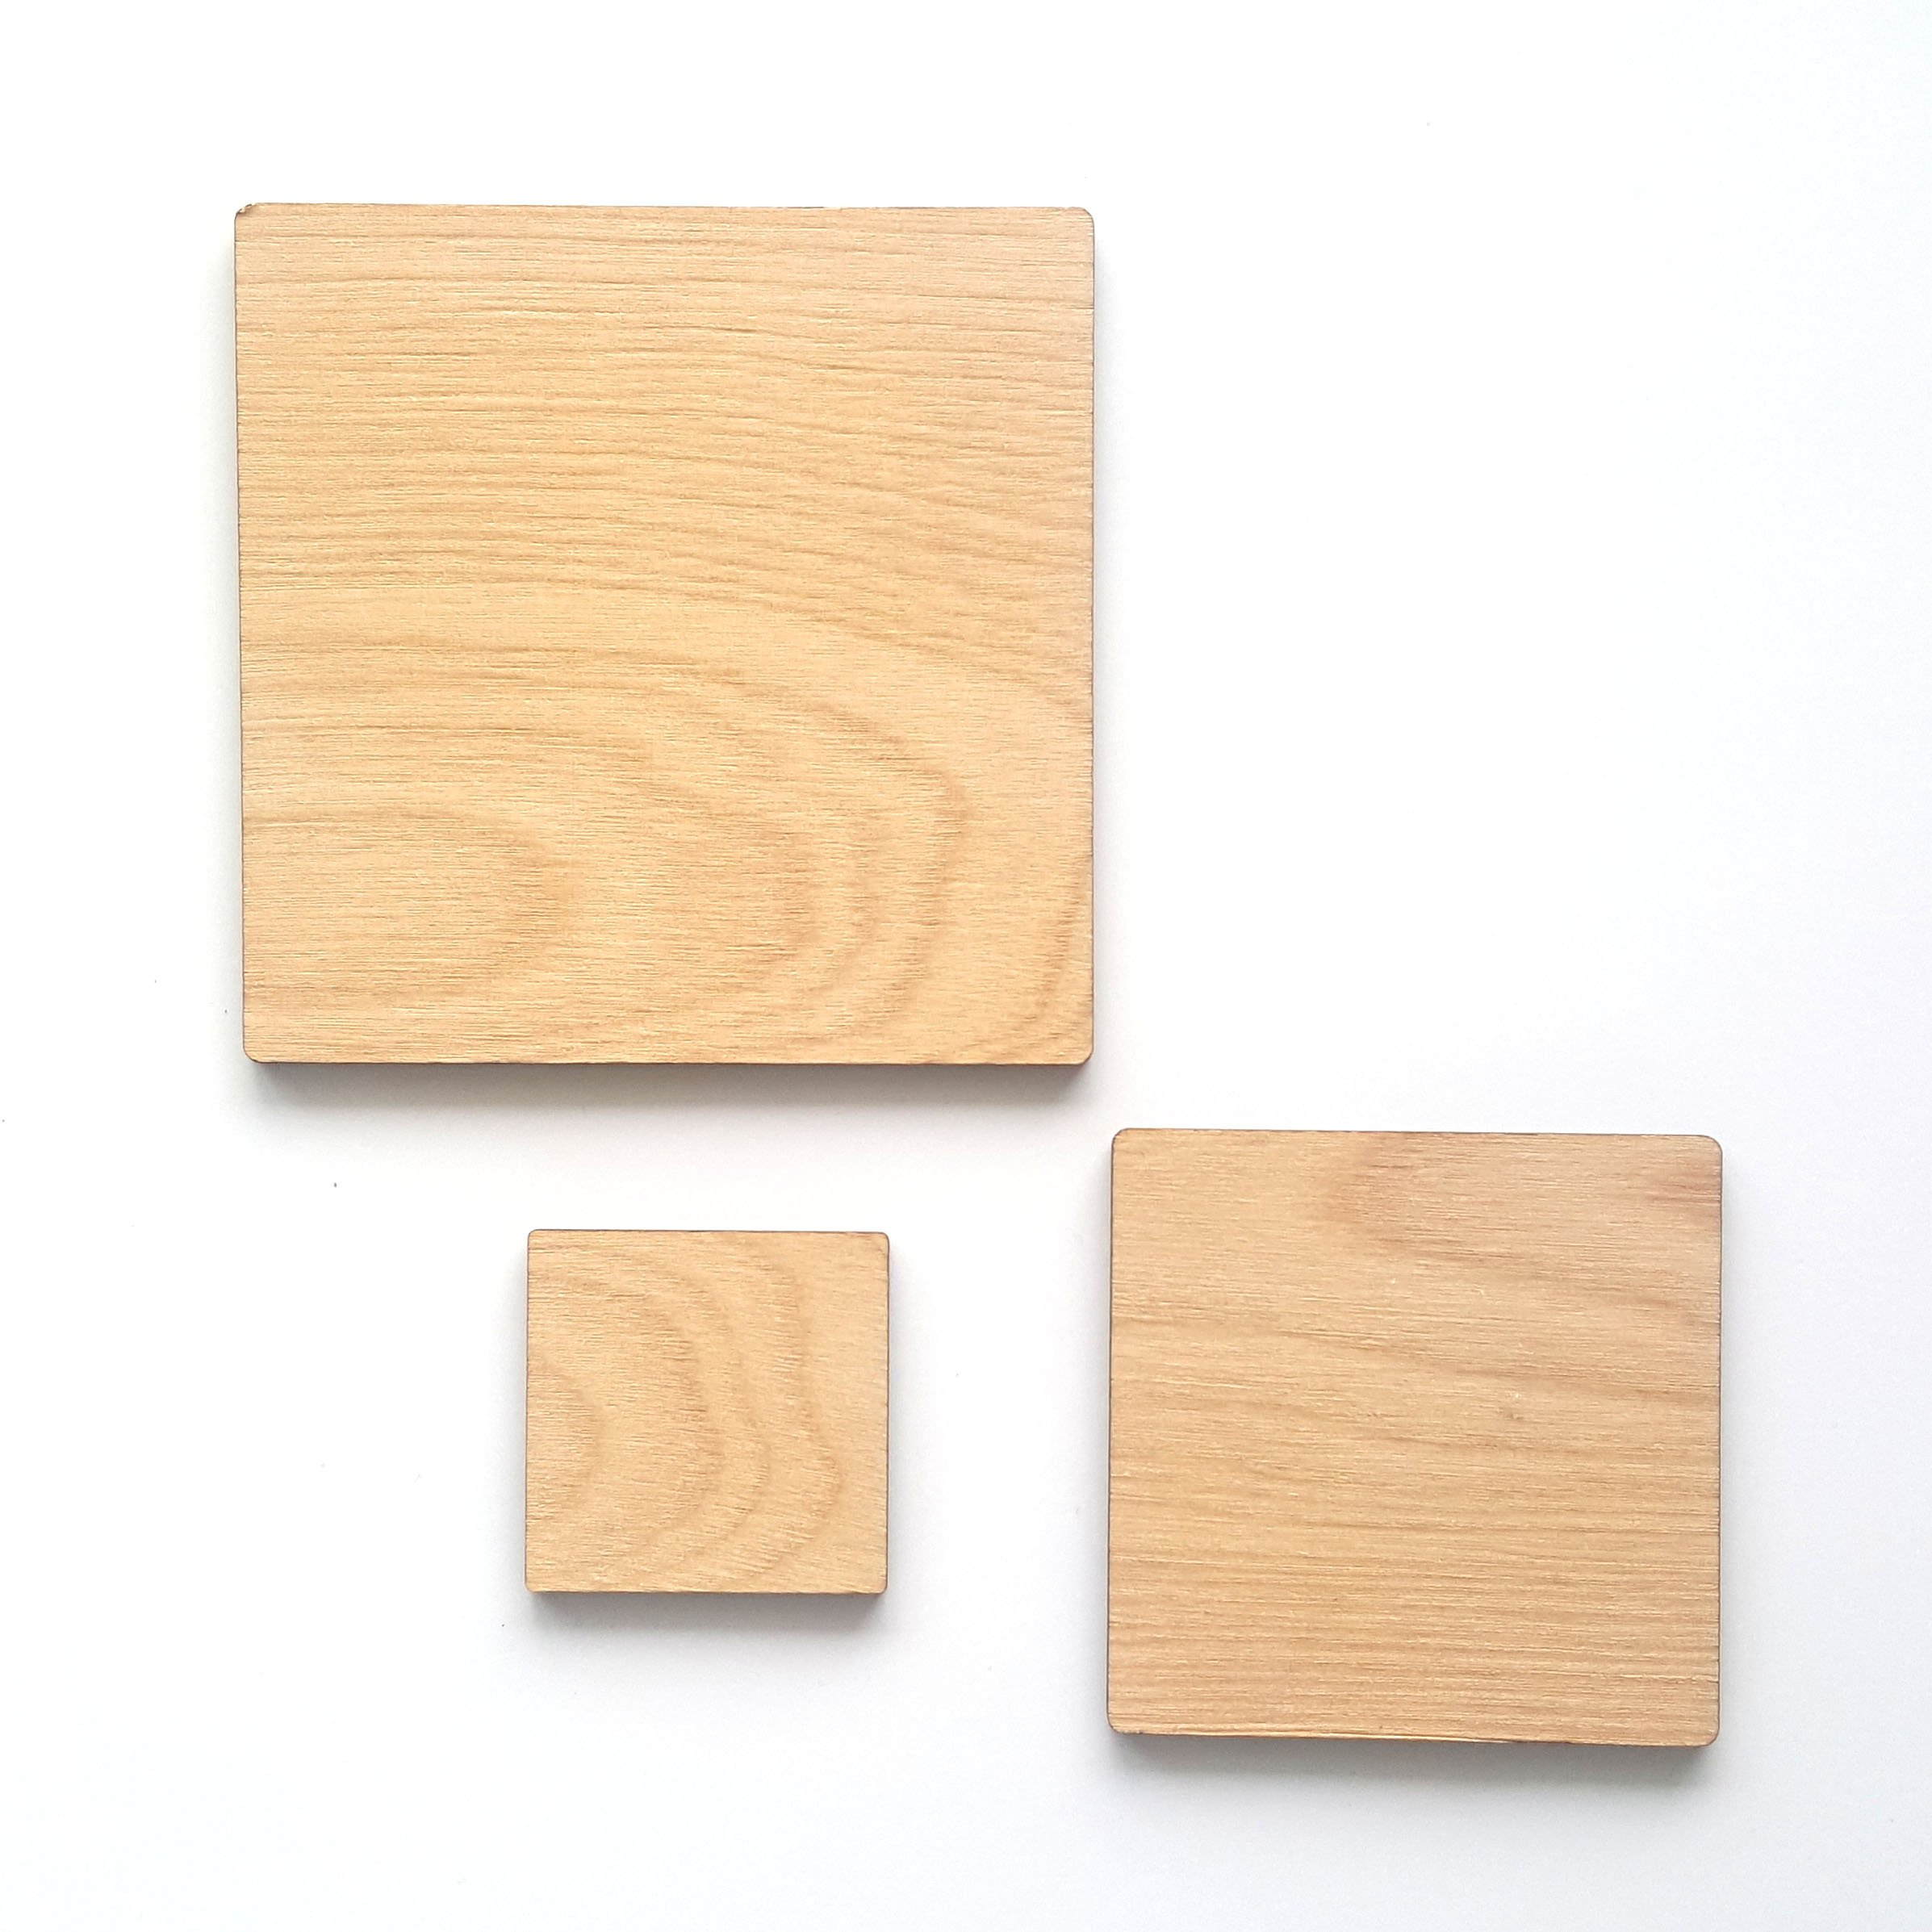 25 Wood Square Blank 1/8'' Thick (Select Size) (6'')